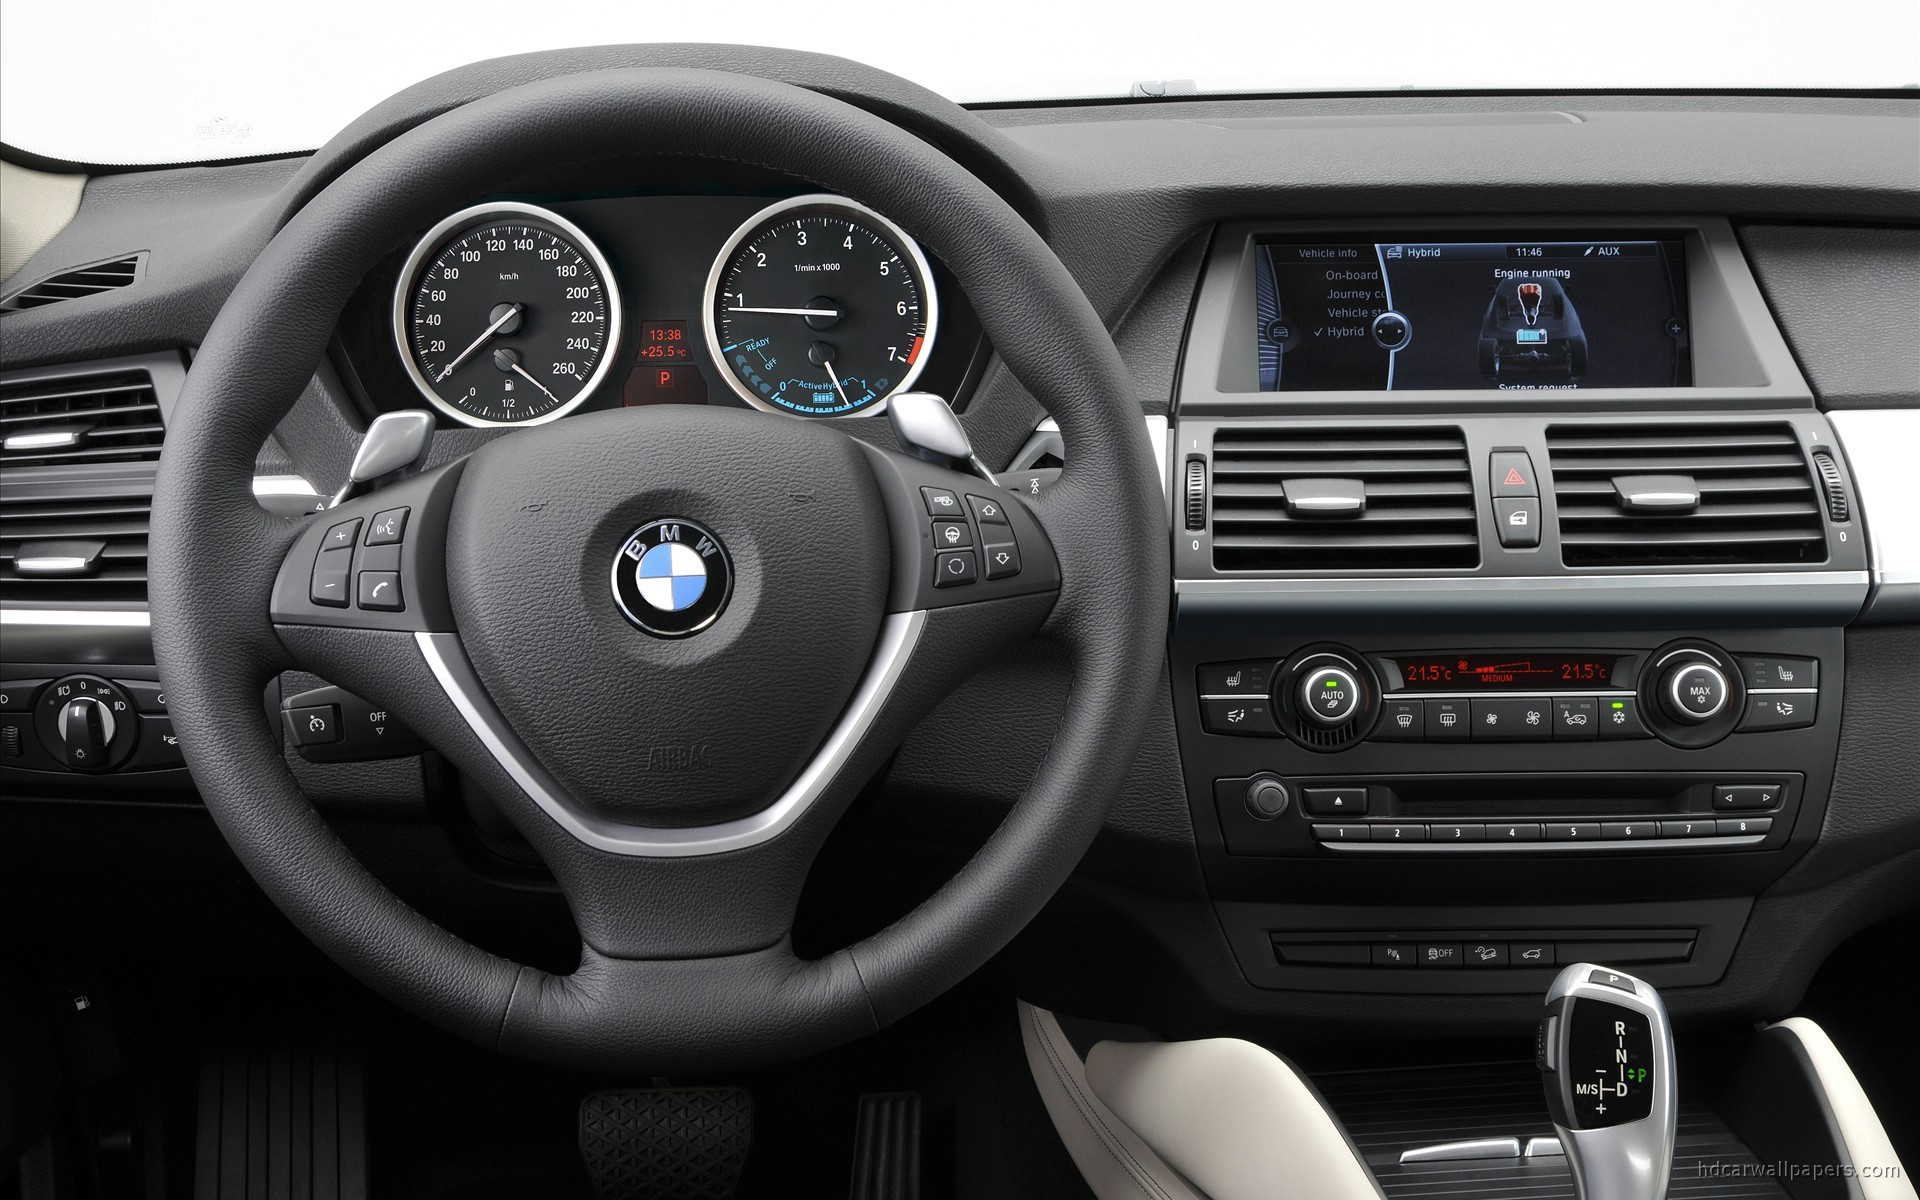 2010 Bmw X6 Activehybrid Interior Wallpaper Hd Car